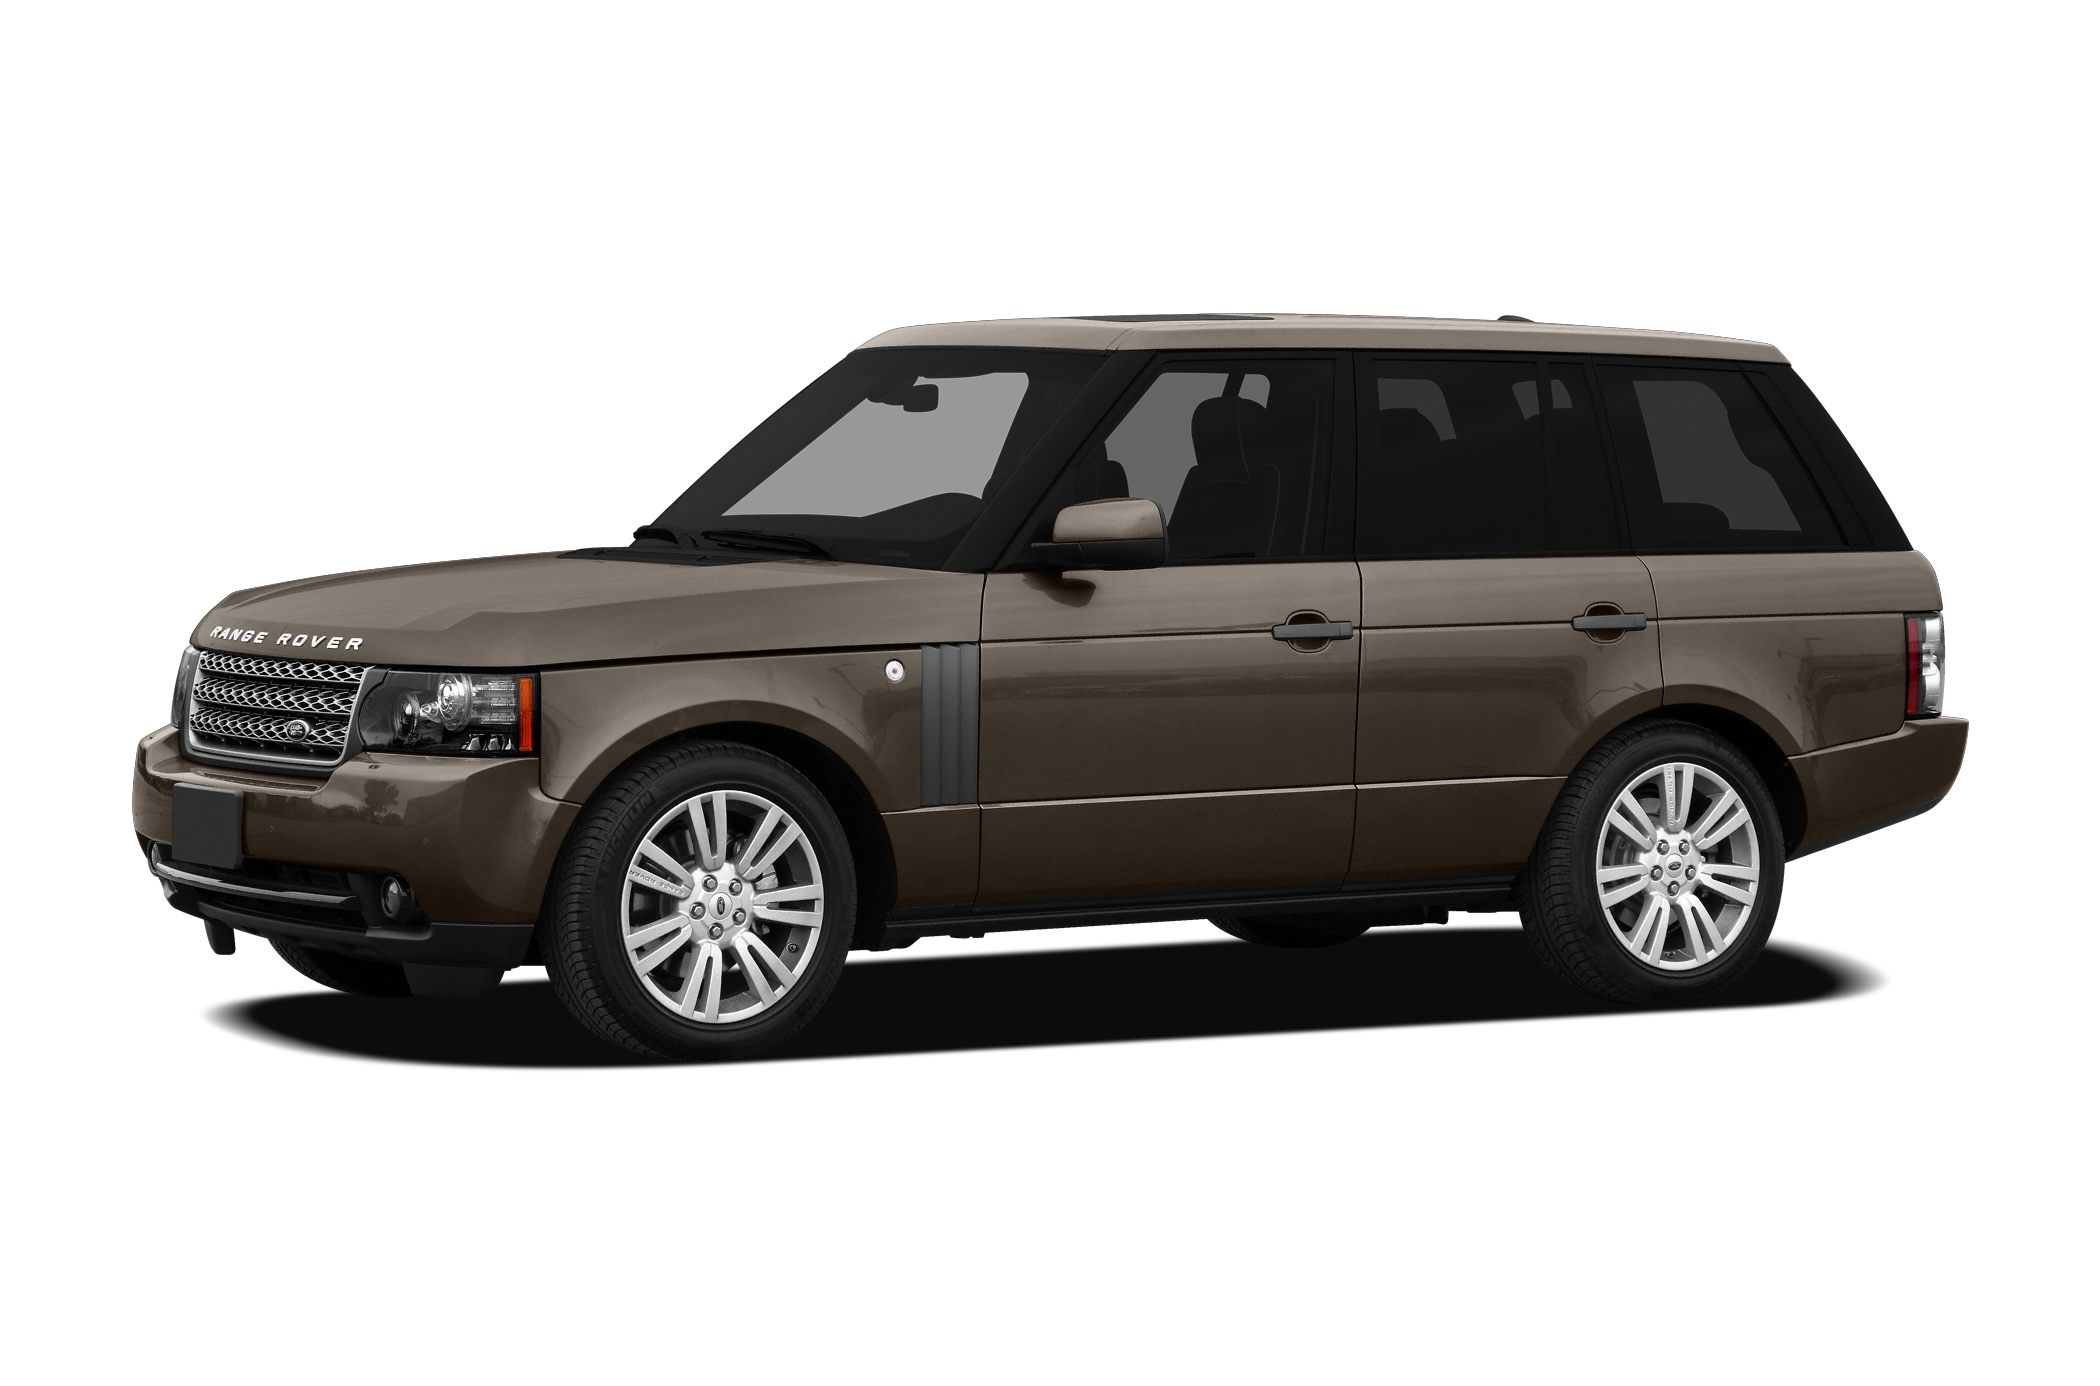 2010 Land Rover Range Rover Information